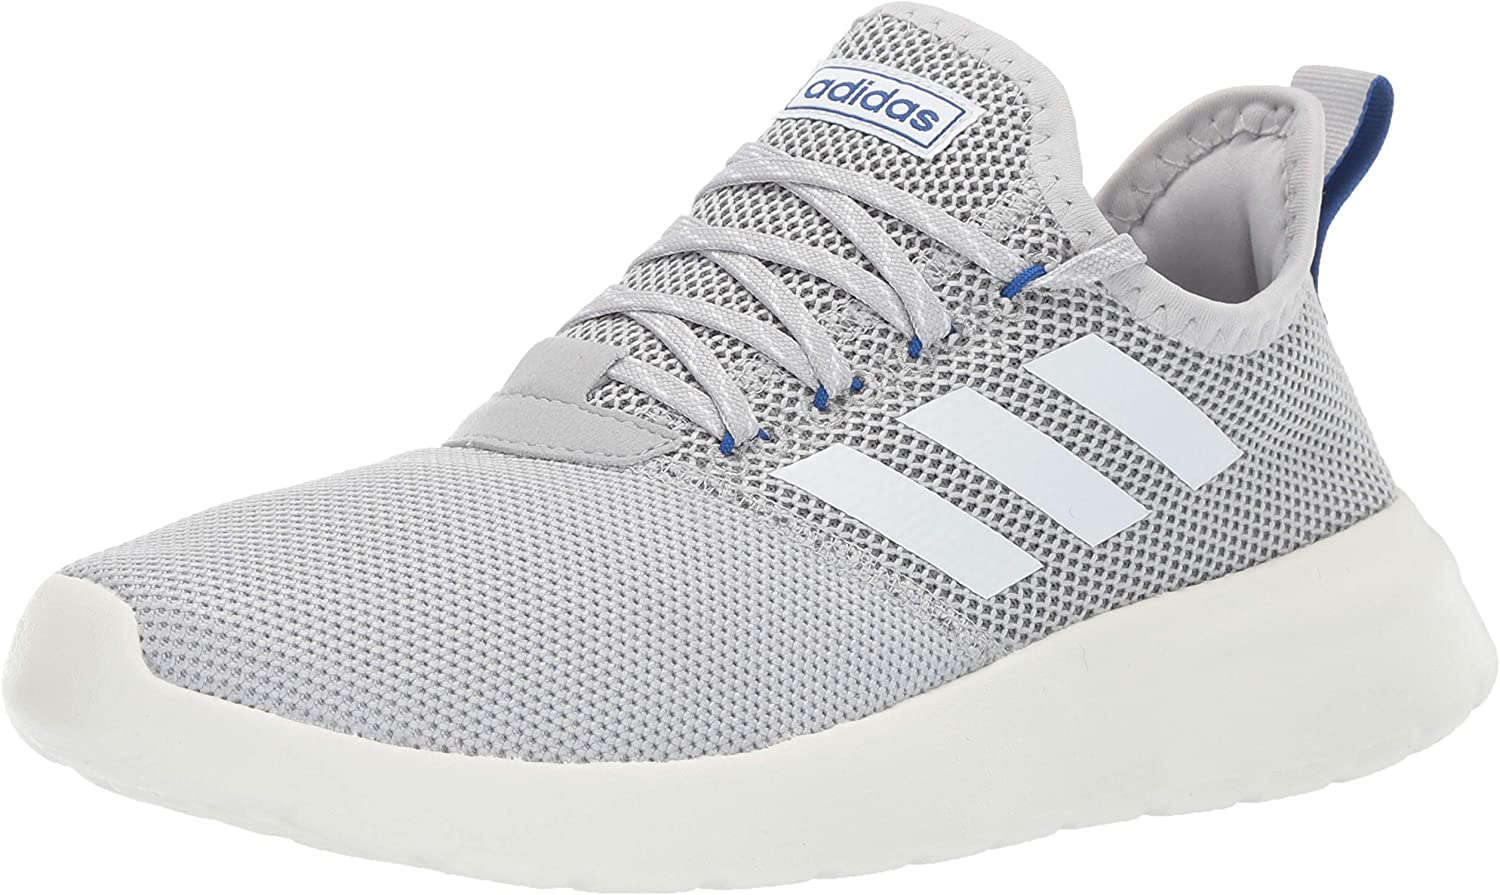 Adidas Men's Lite Racer Reborn Athletic shoes, Grey Footwear White Collegiate Royal, 9.5 Regular US